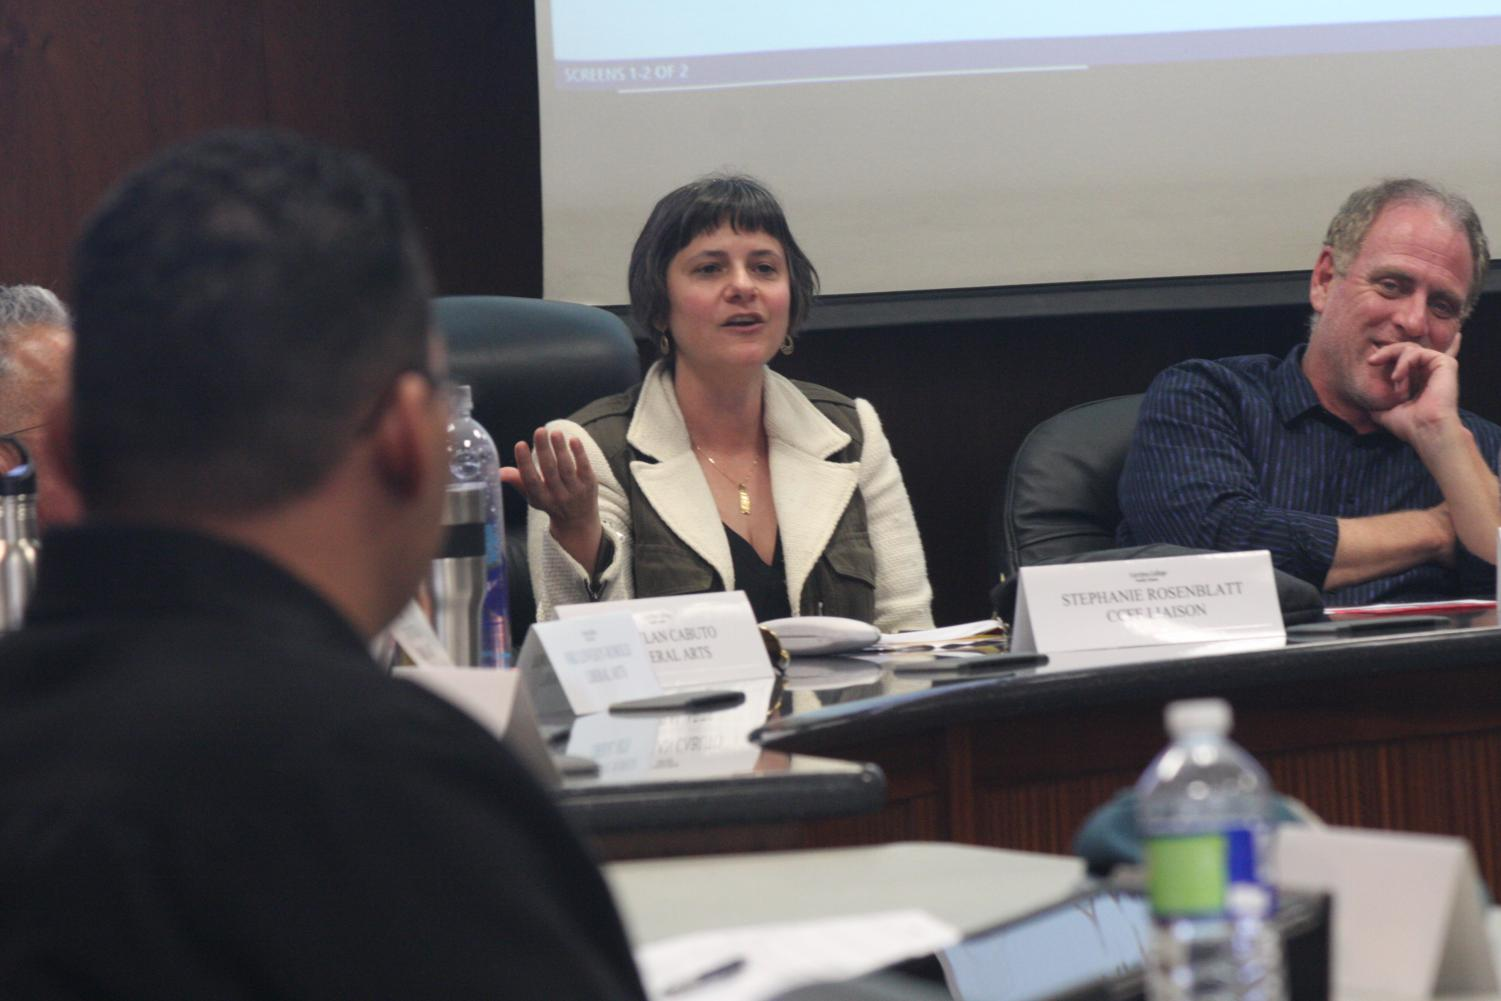 While in Faculty Senate Stephanie Rosenblatt, Cerritos College Faculty Federation liaison, asks other members to attend the Board of Trustees meeting. Rosenblatt hopes to have 40 other faculty members attend the meeting to support part-time counselors.